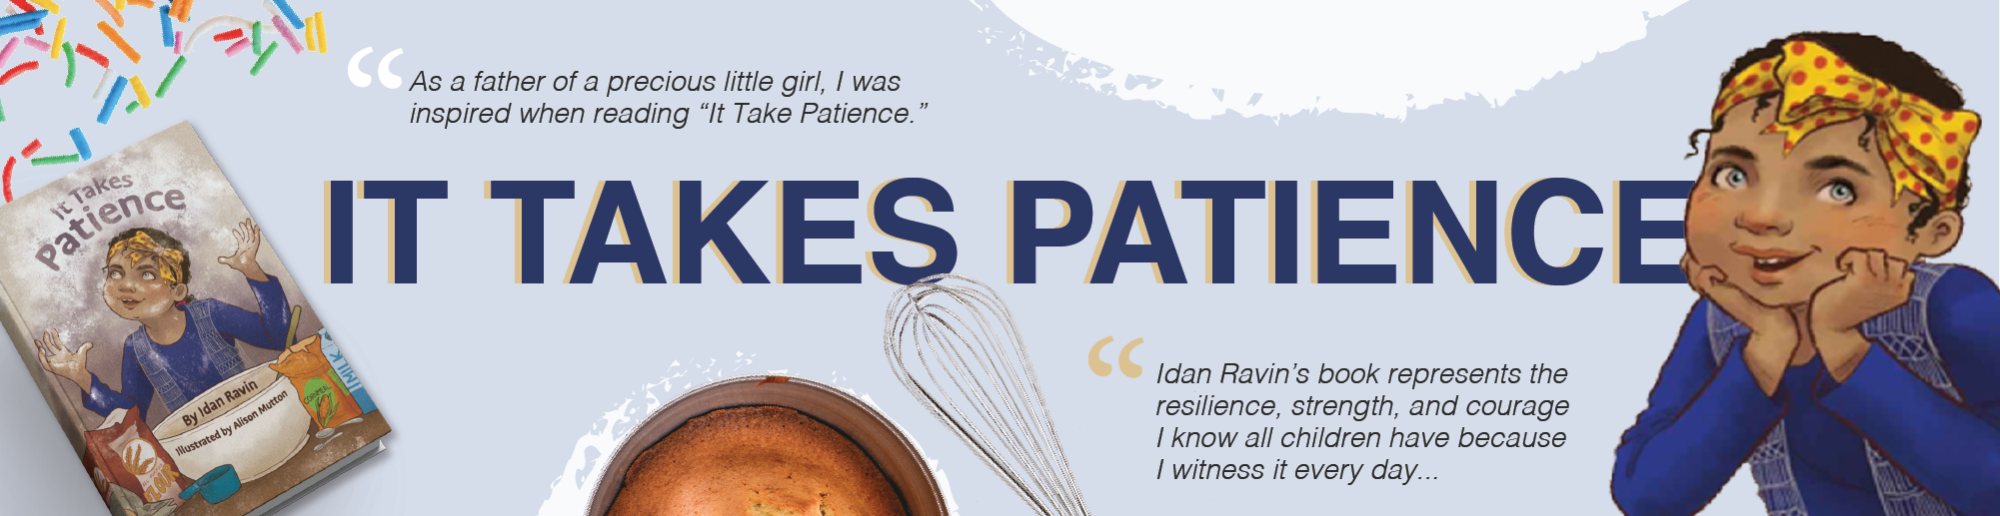 It Takes Patience